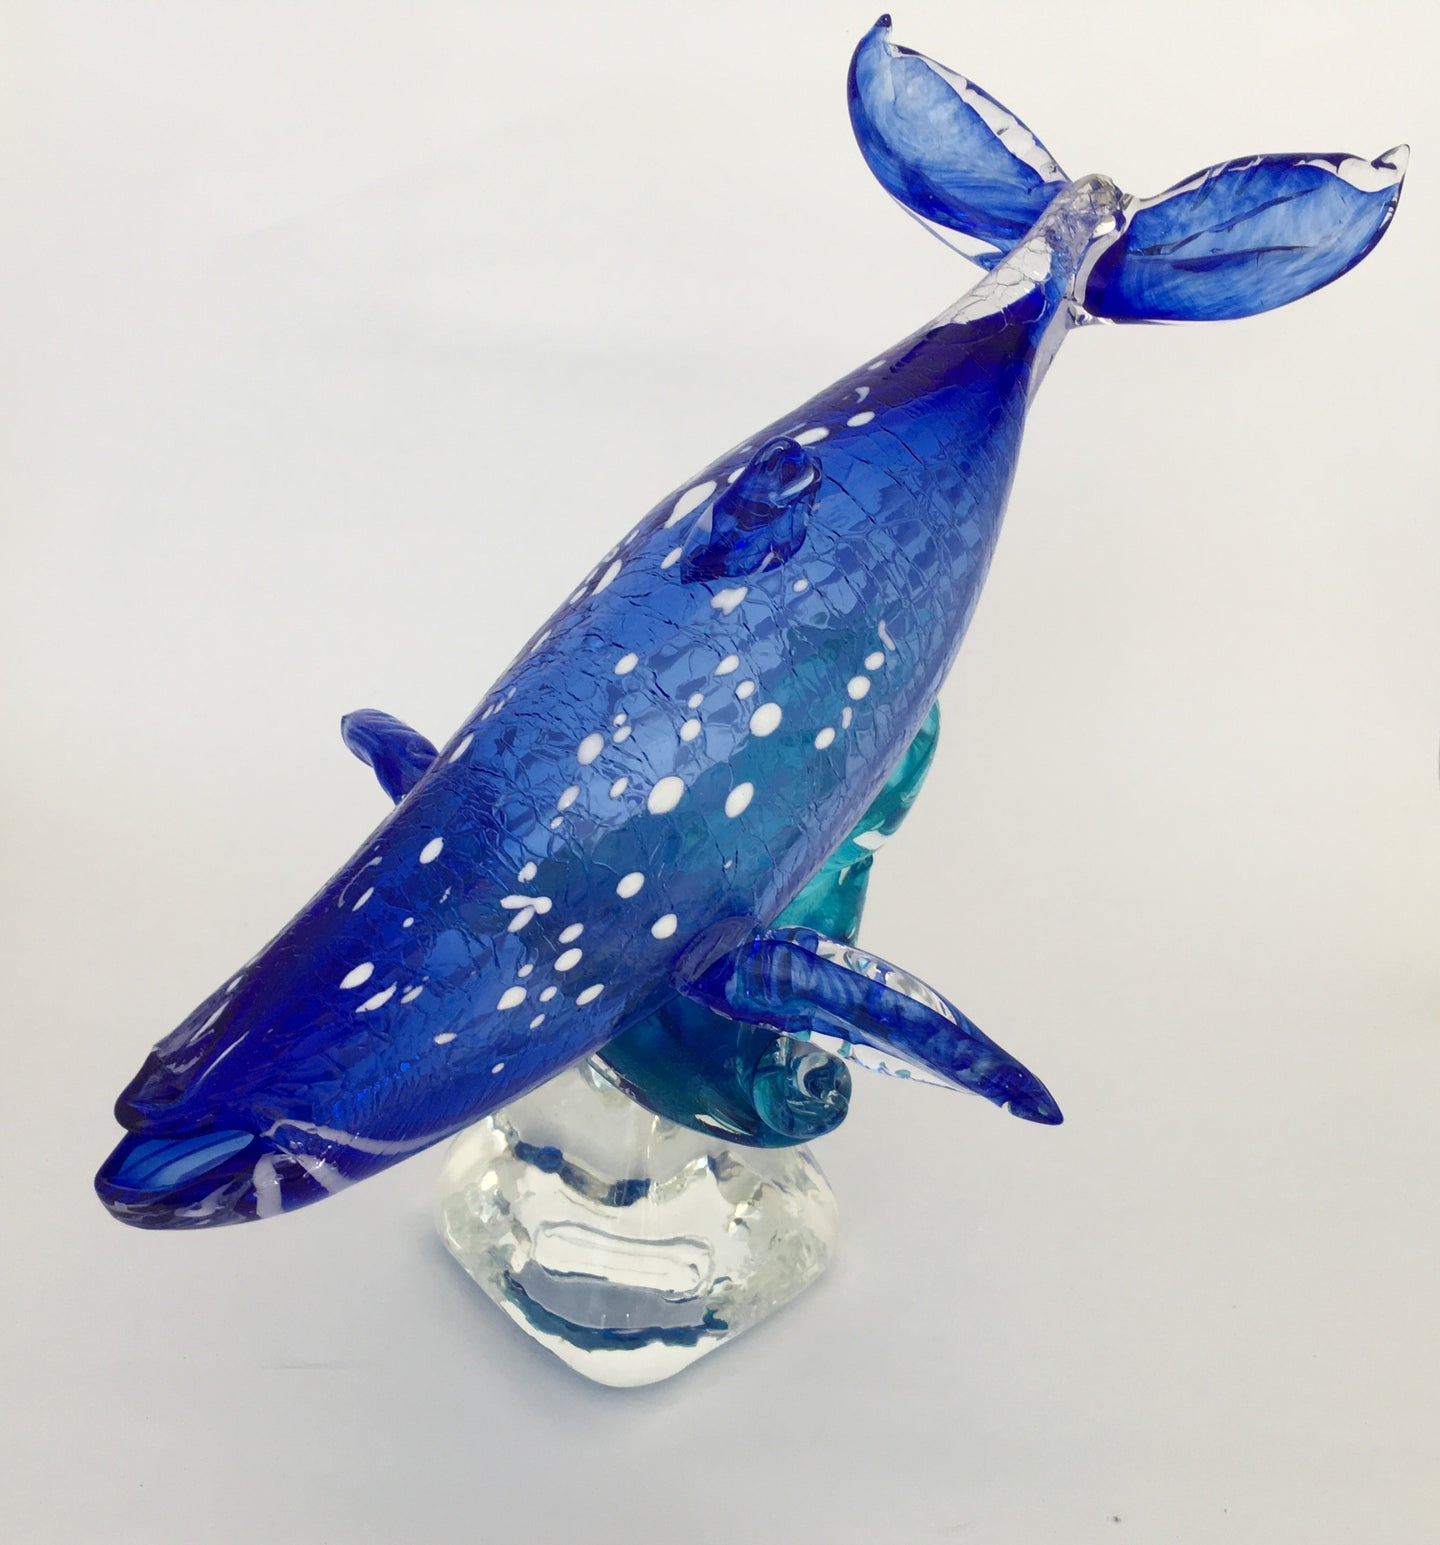 Baleine bleue sur base de verre / Blue Whale on glass base